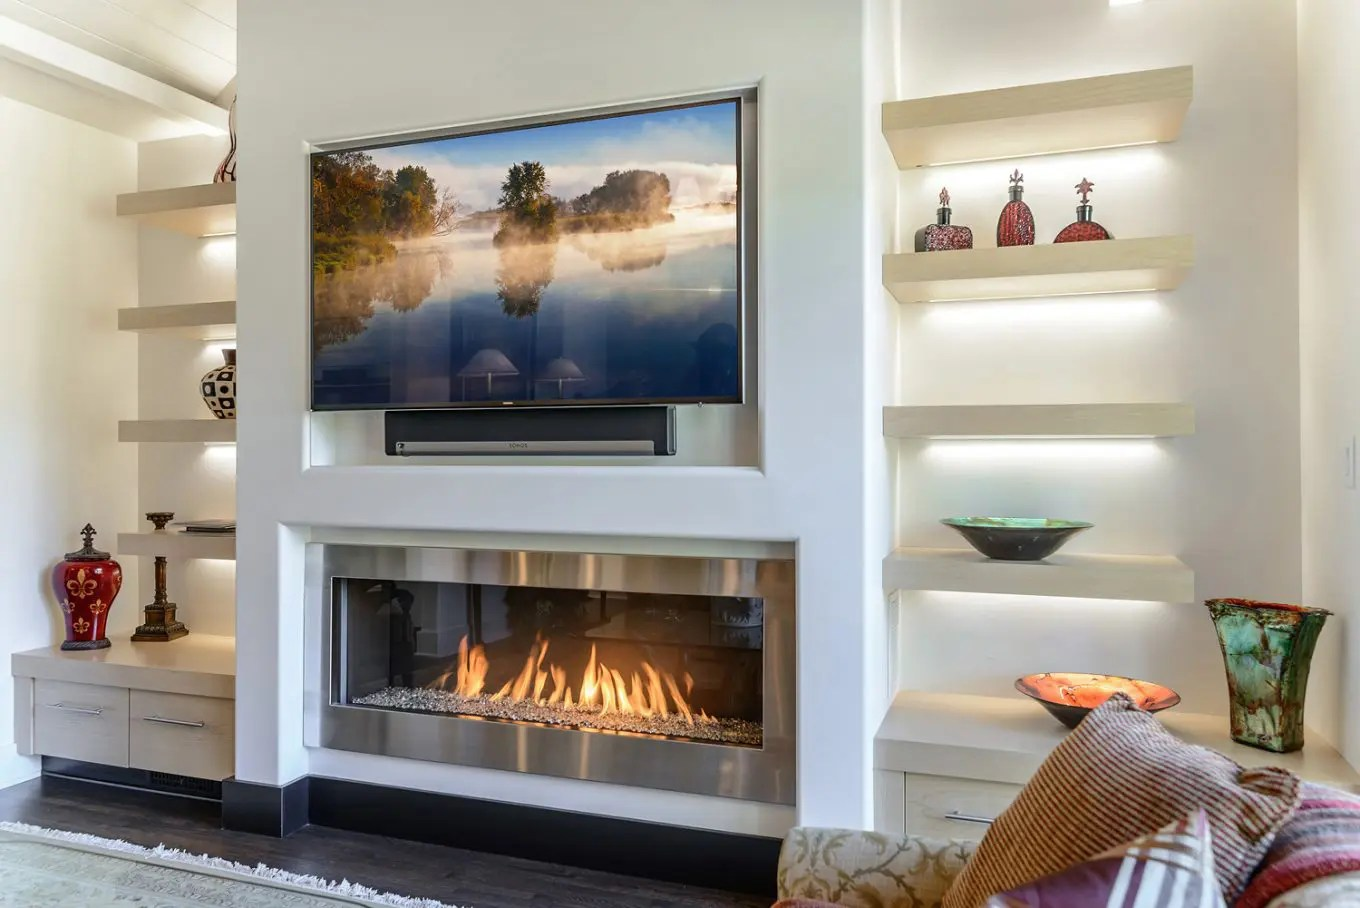 How To Operate A Fireplace Ask The Experts Should You Install A Tv Over A Fireplace